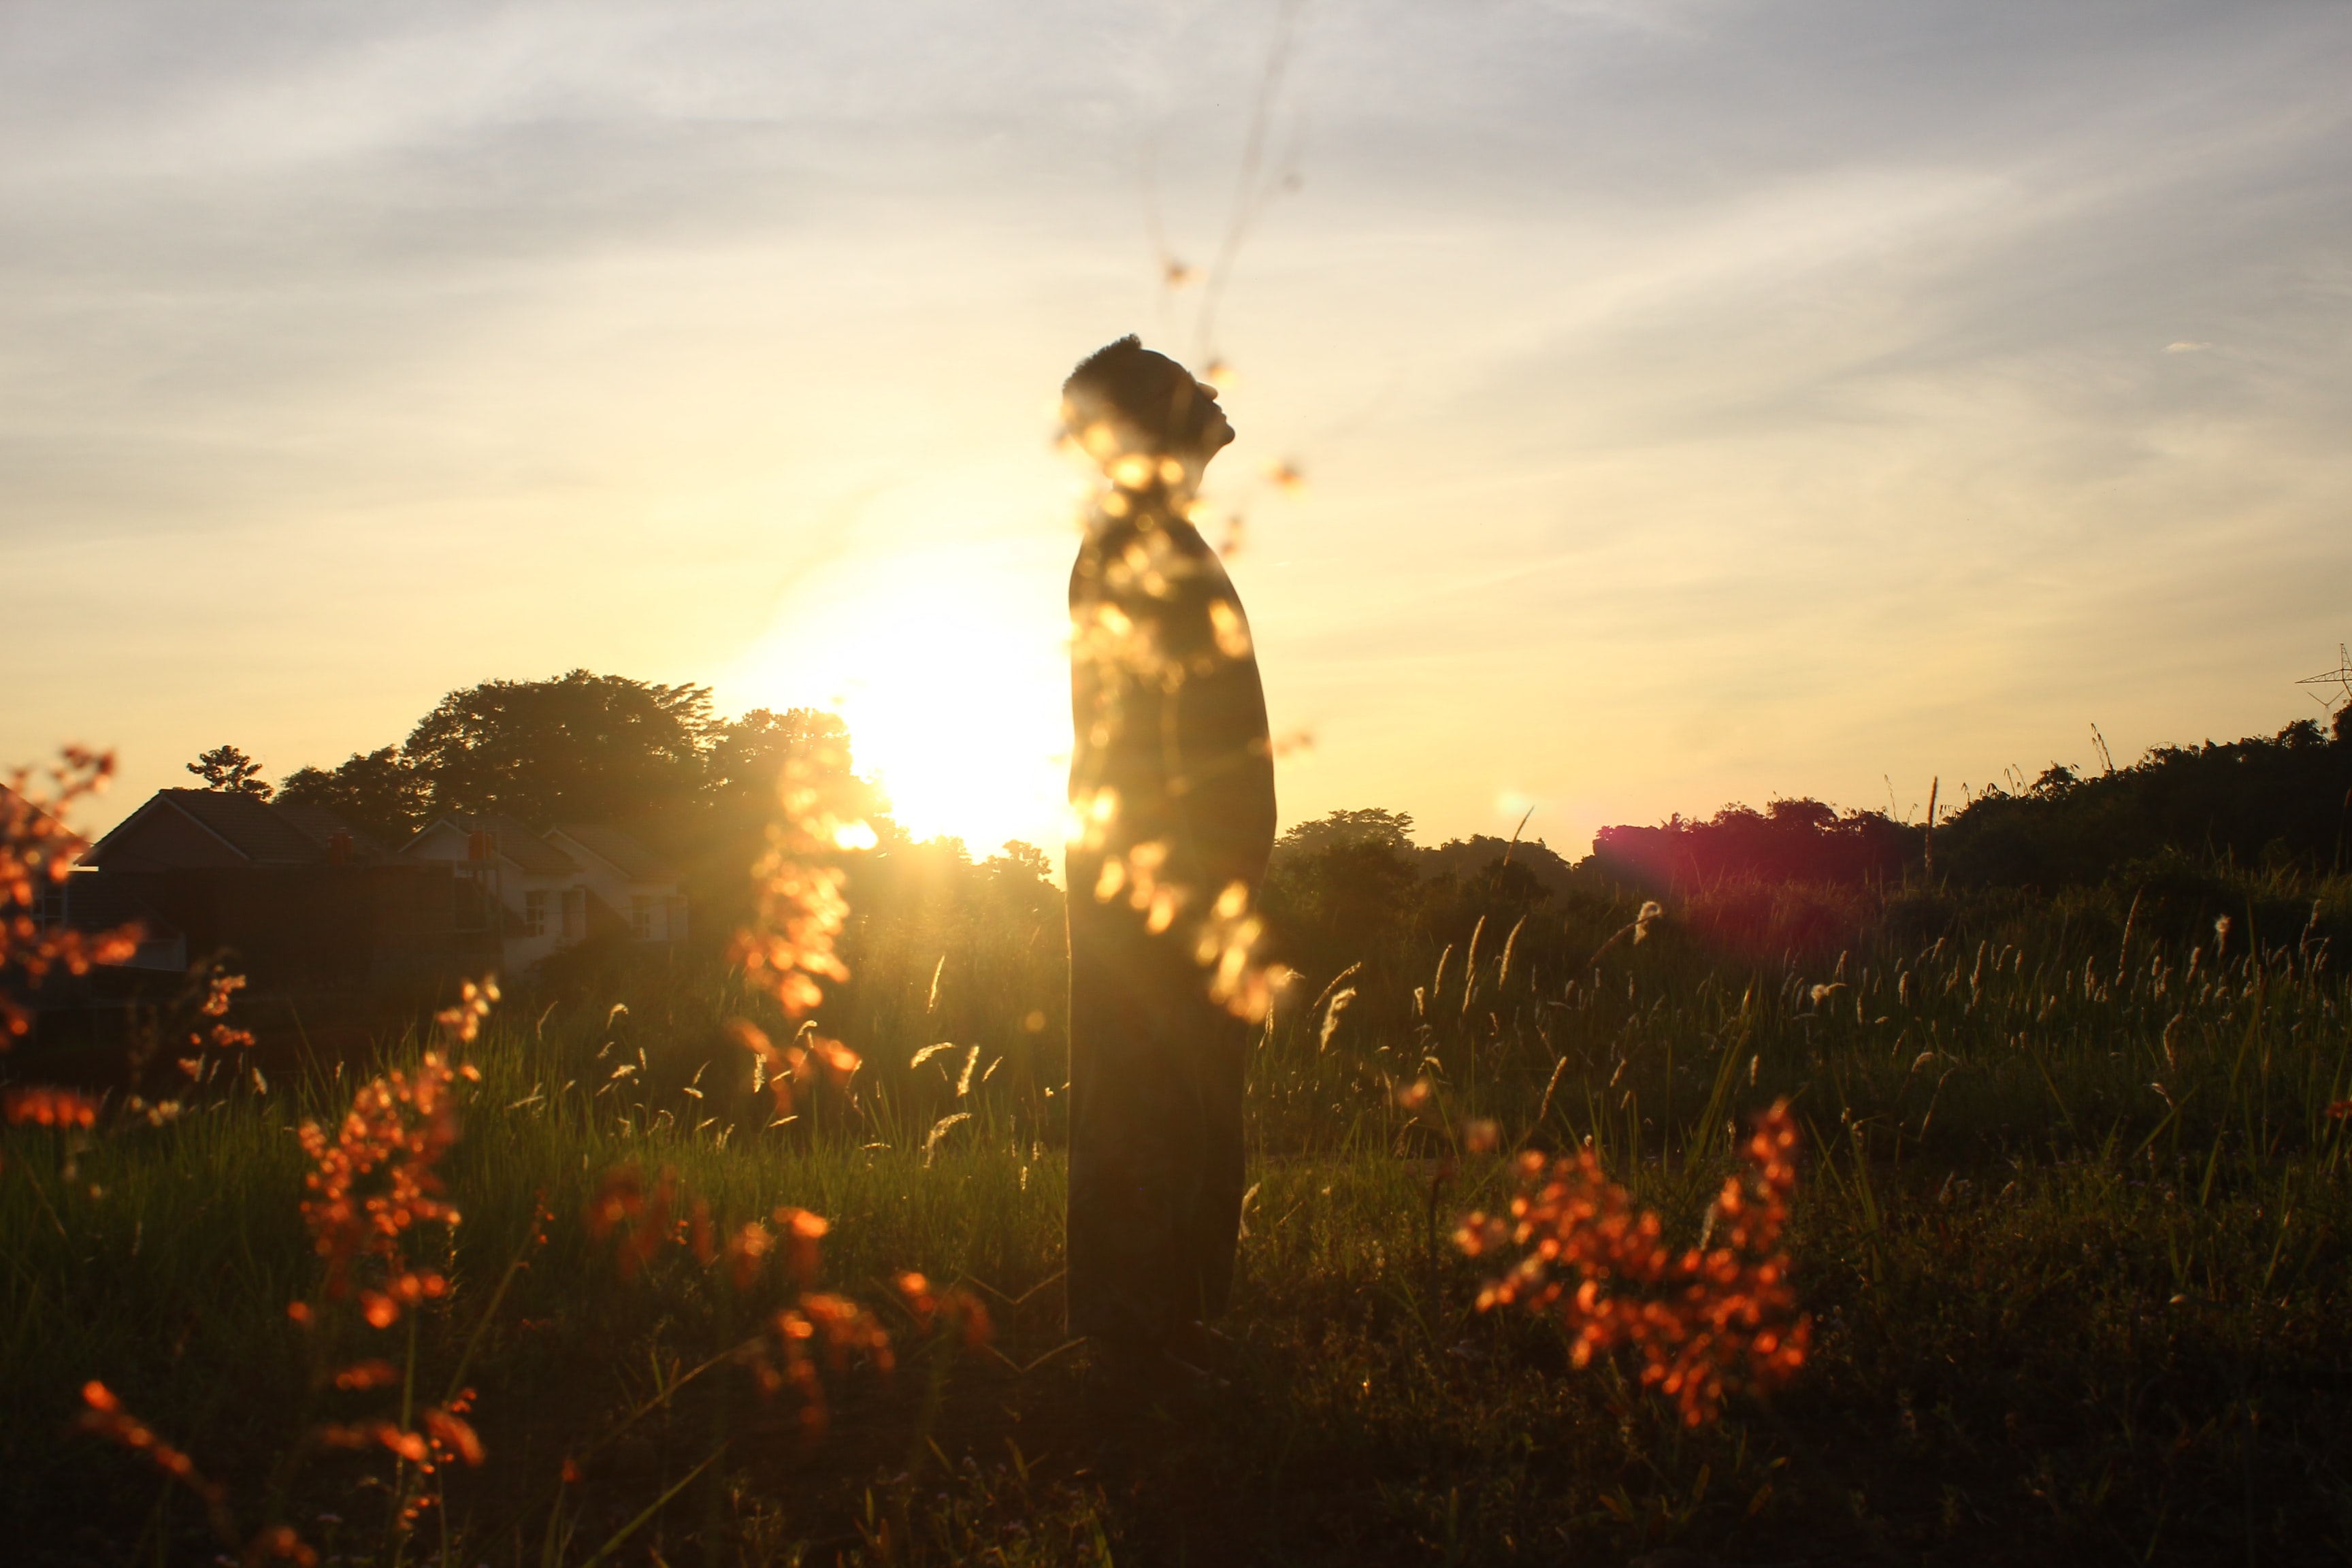 silhouette of person standing on field while staring above